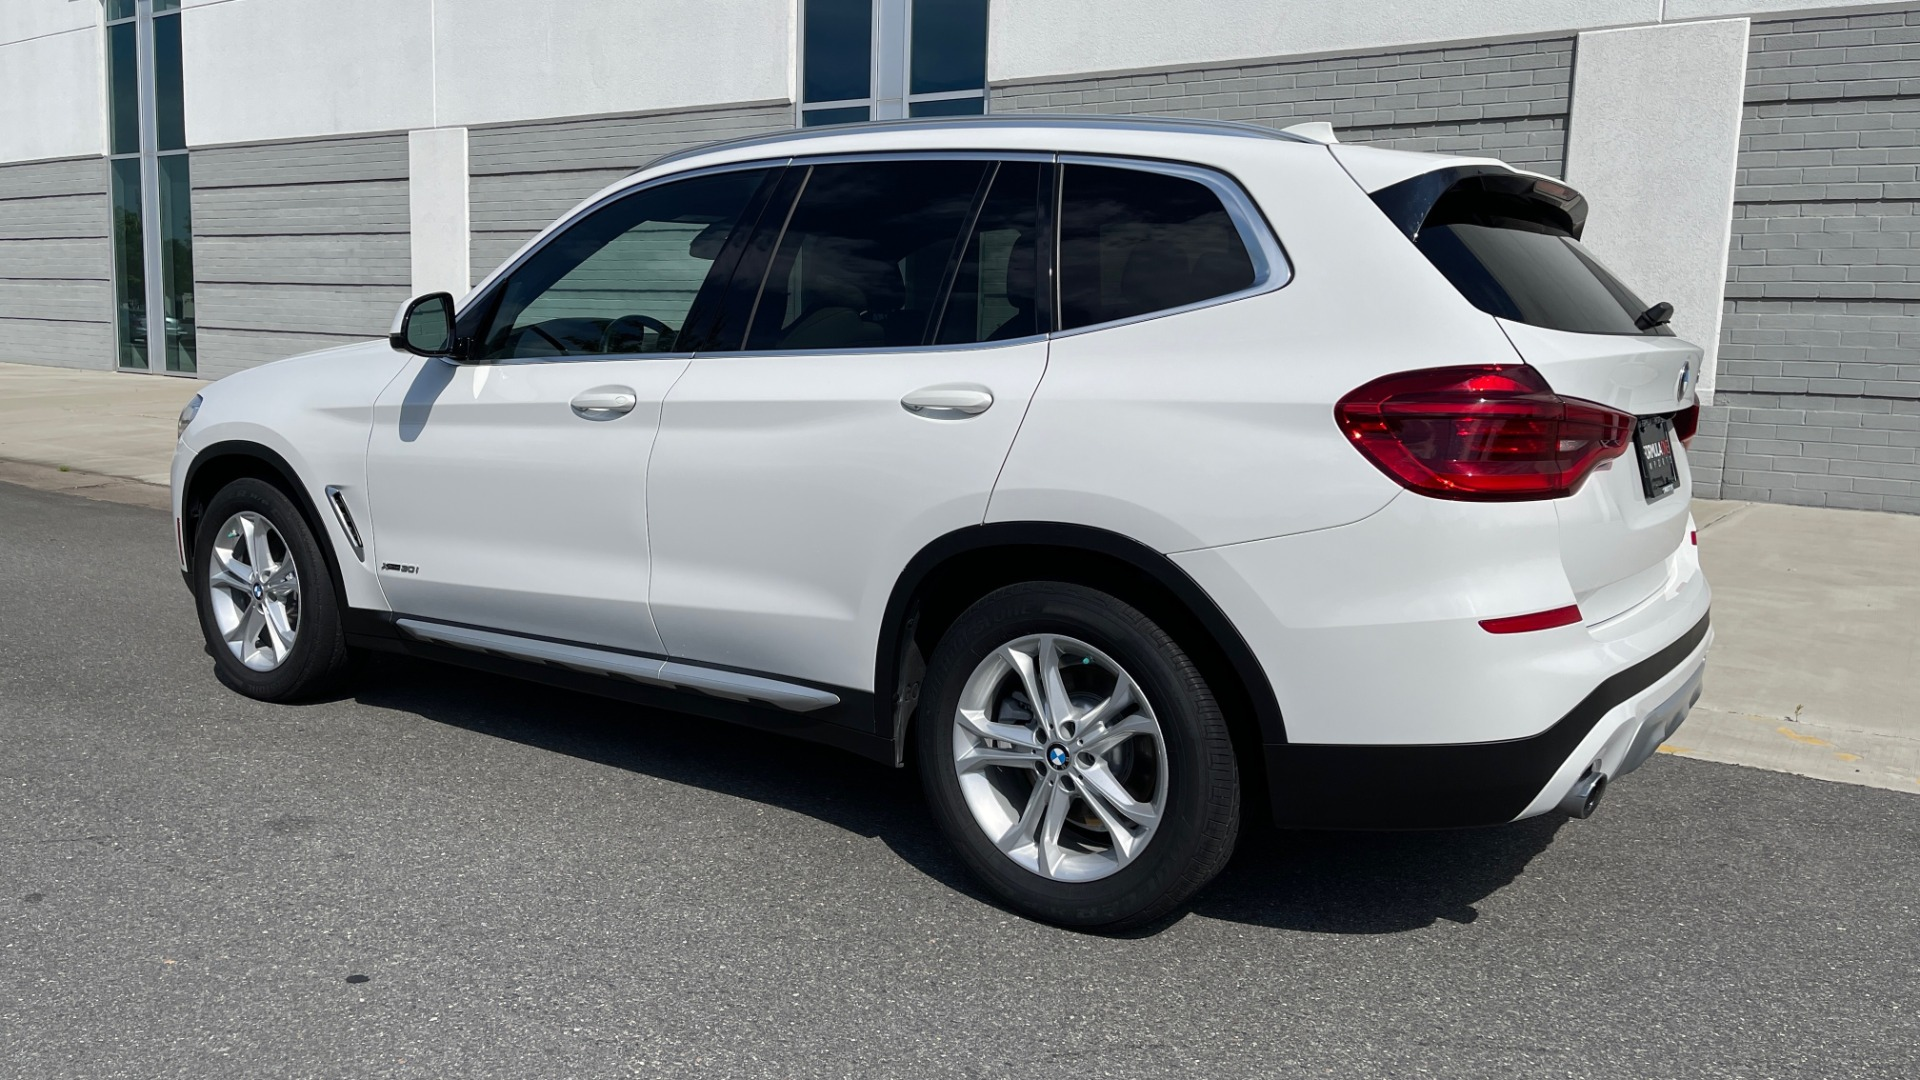 Used 2018 BMW X3 XDRIVE30I CONVENIENCE PKG / HEATED FRONT SEATS / REARVIEW for sale $36,595 at Formula Imports in Charlotte NC 28227 5